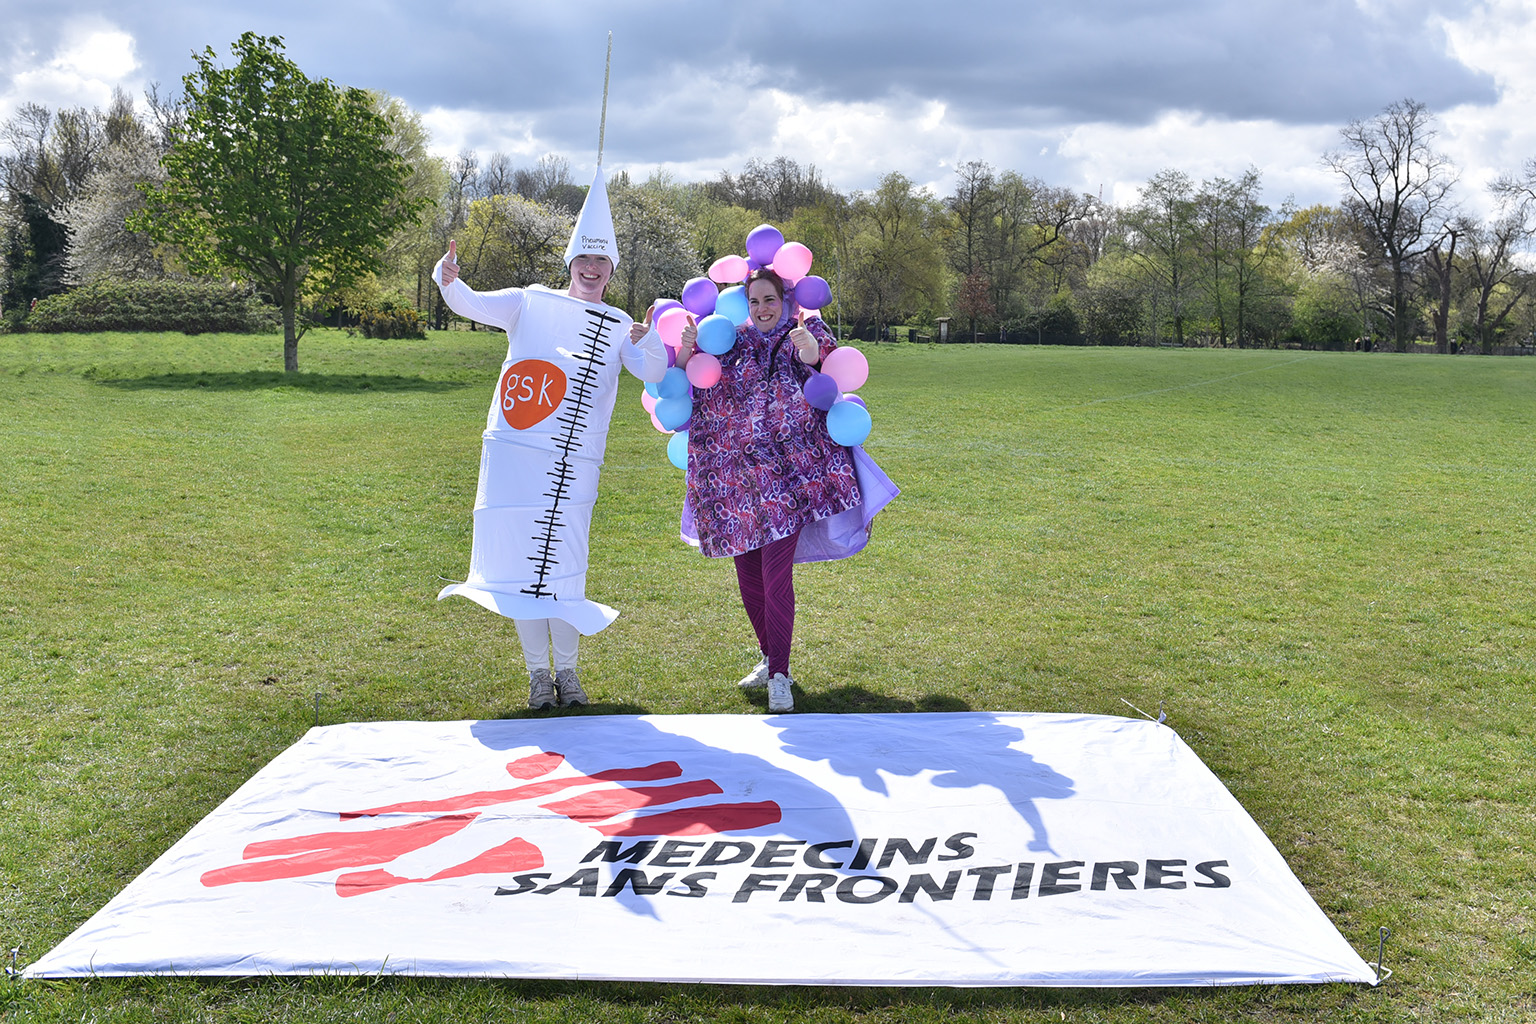 Fun Run 2016 in Regent's Park Médecins Sans Frontières / Doctors Without Borders